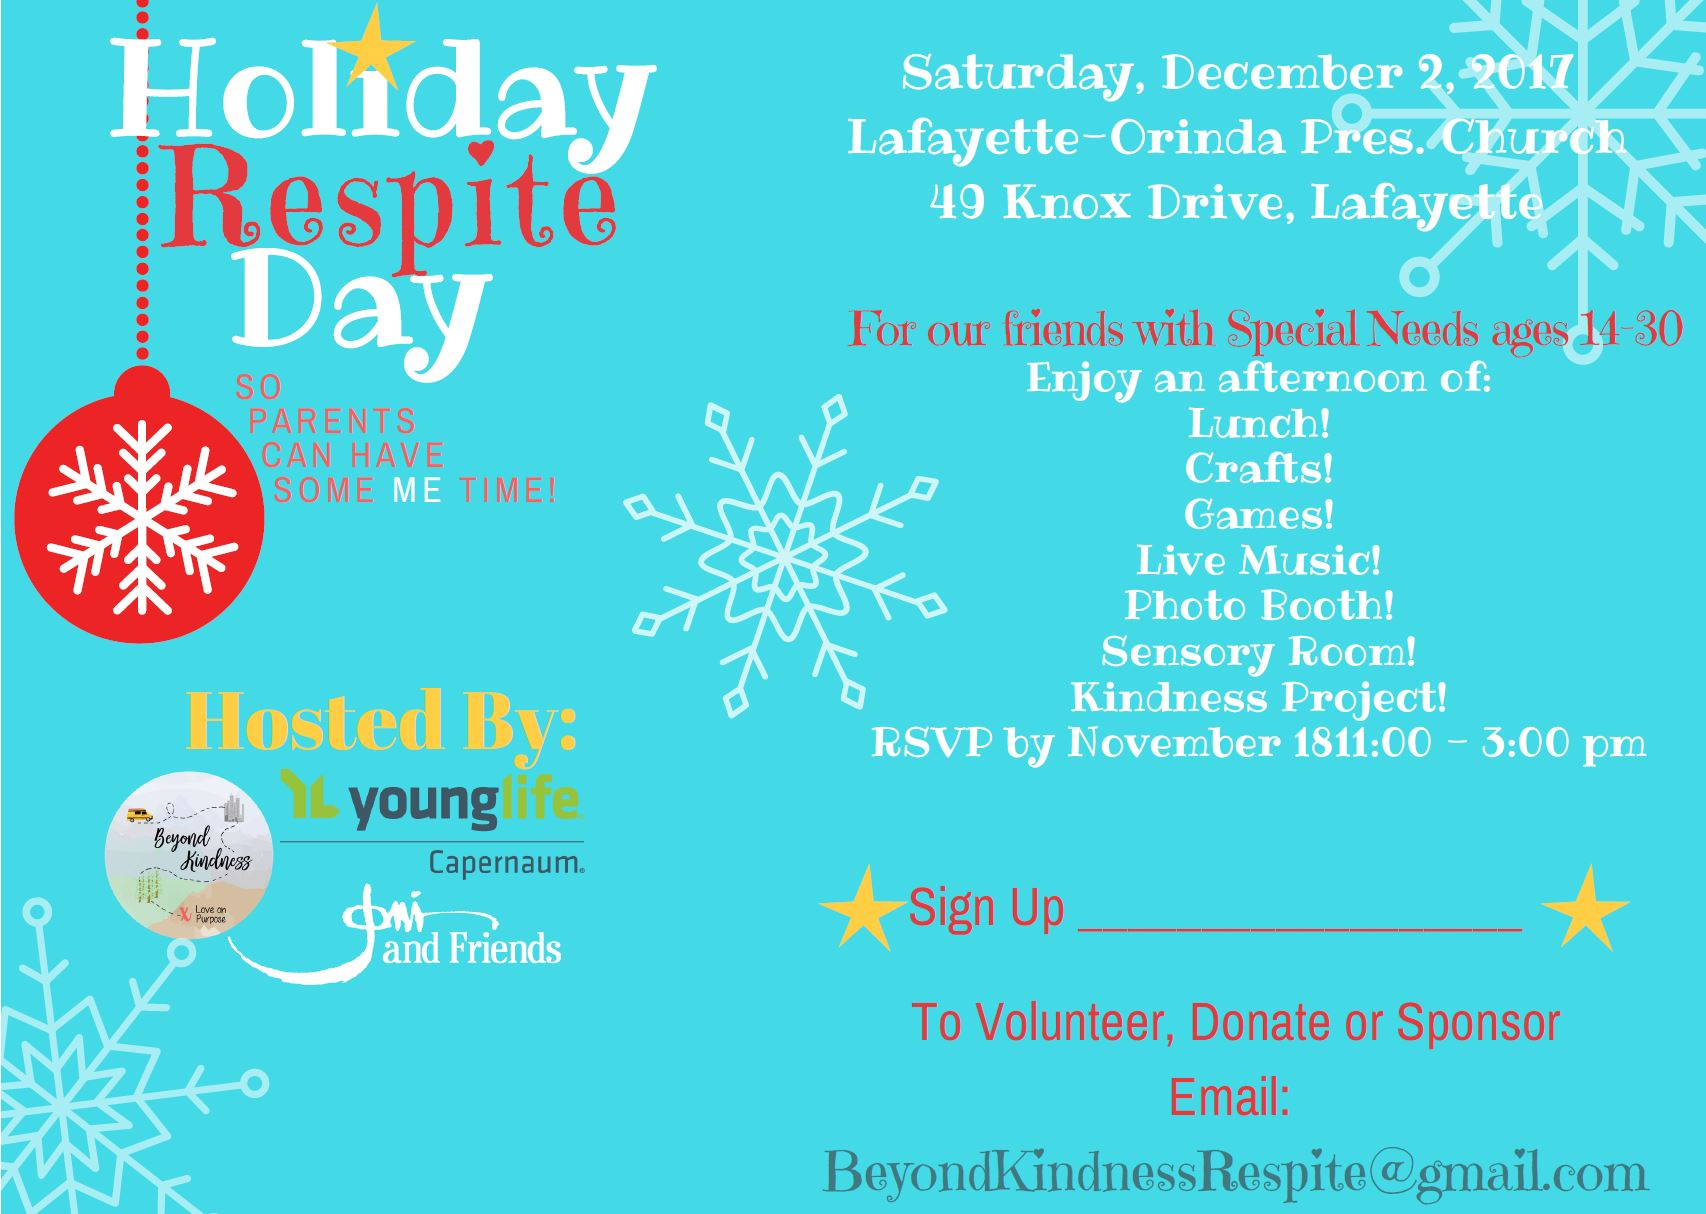 Beyond Kindness Holiday Respite Day